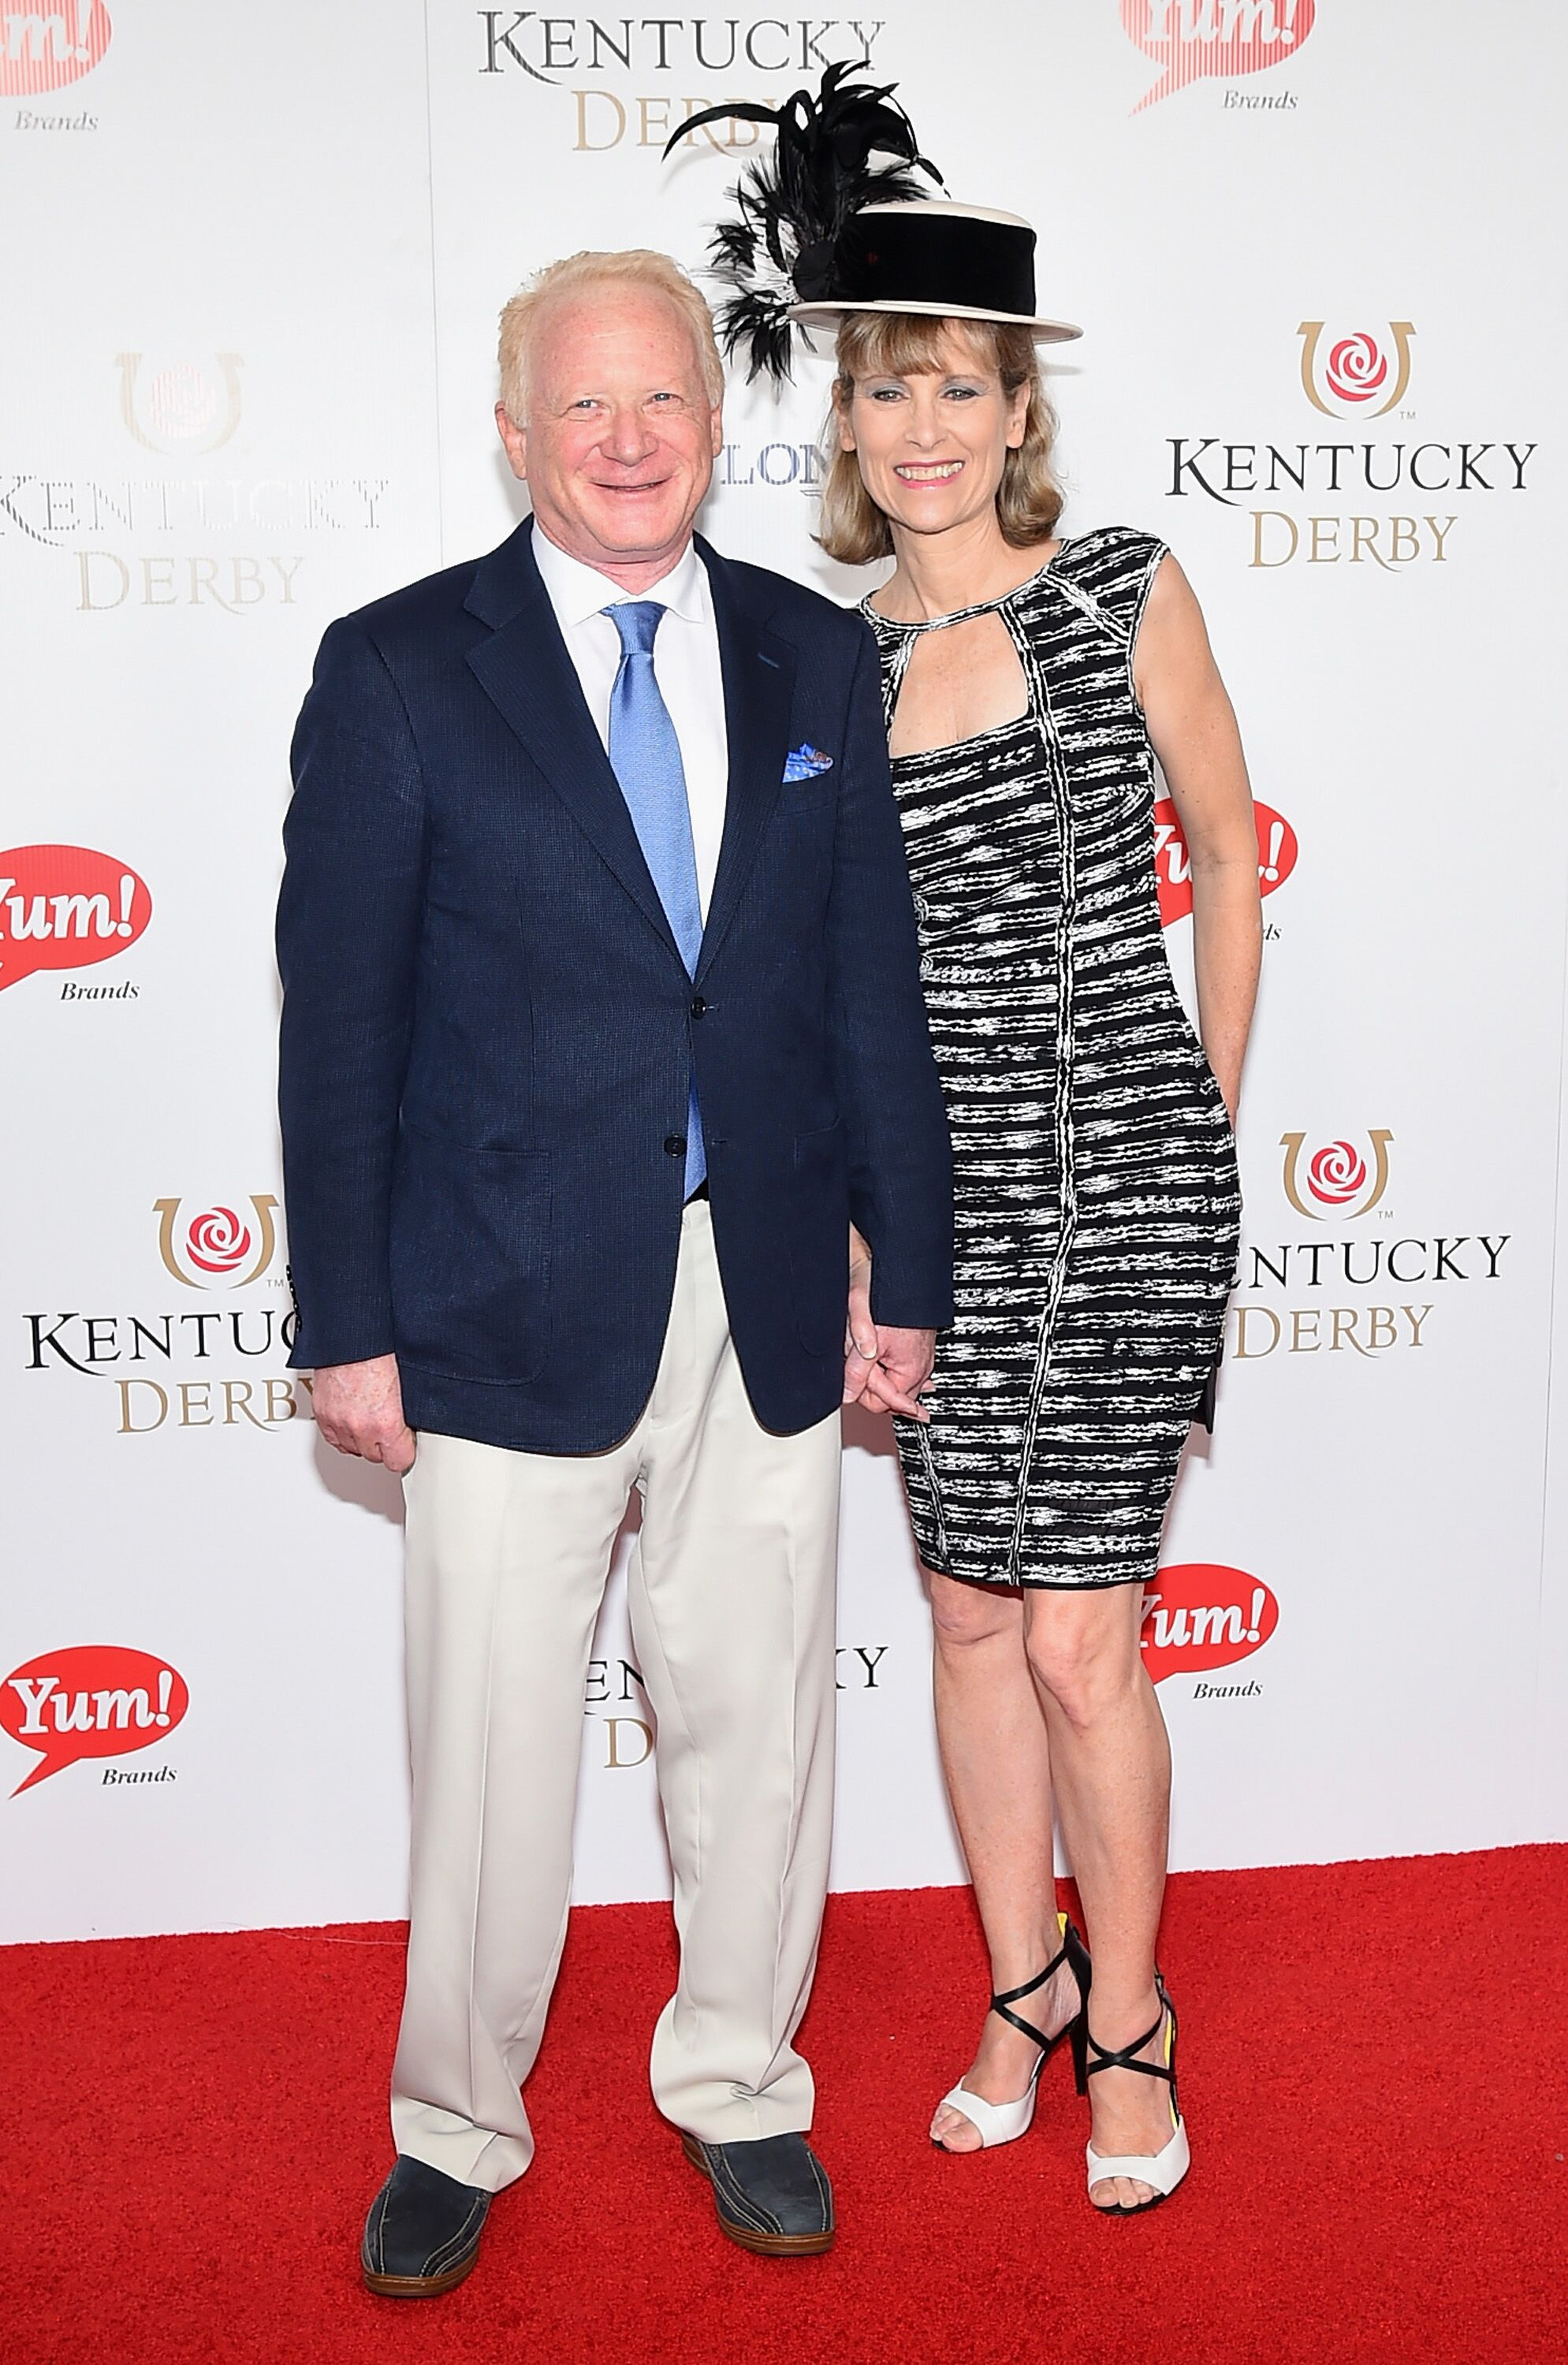 Don Most and Morgan Hart attend the 141st Kentucky Derby at Churchill Downs on May 2, 2015 in Louisville, Kentucky.   Source: Getty Images